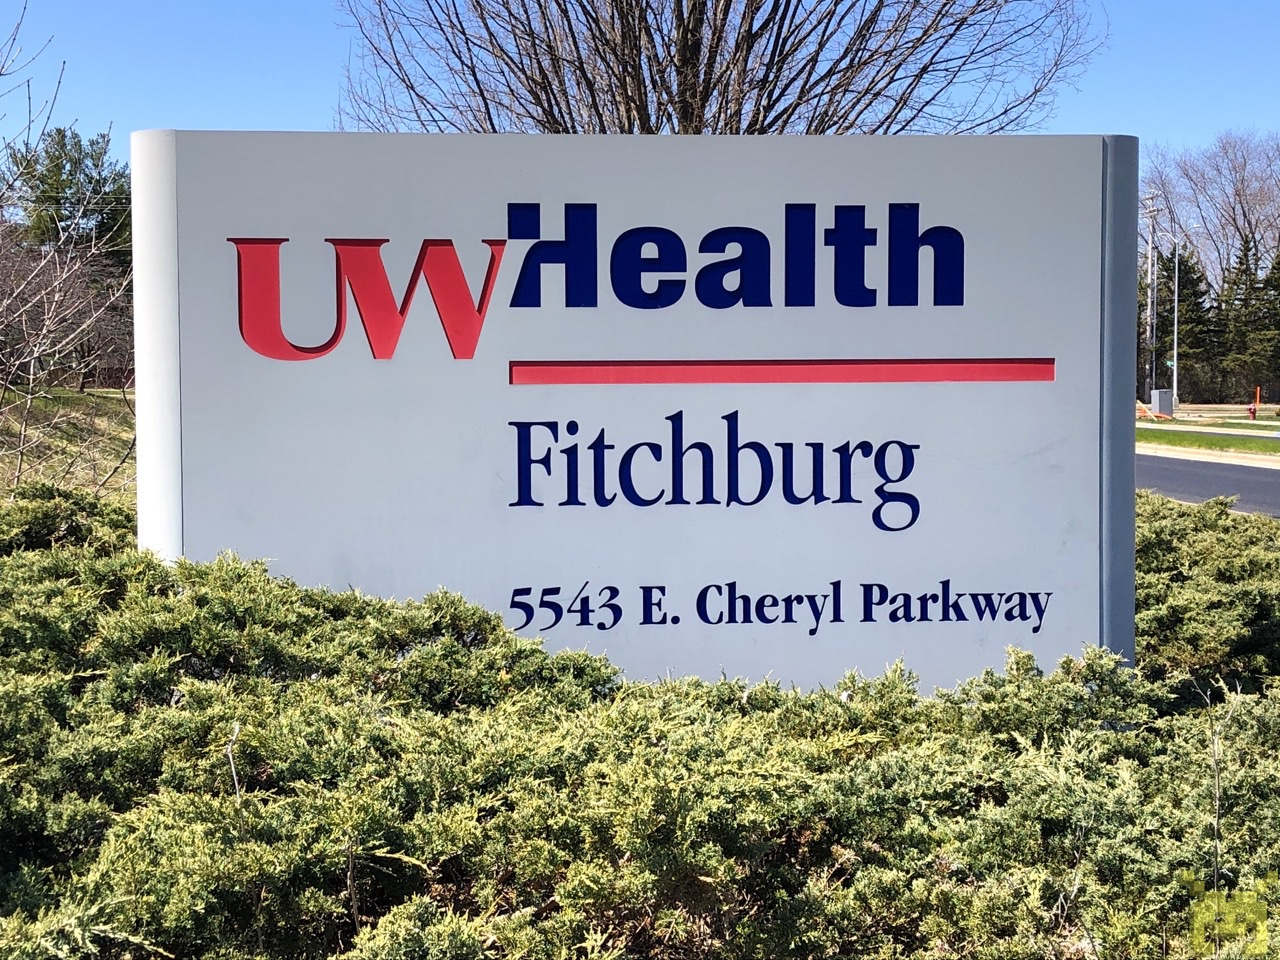 UW Health in Fitchburg